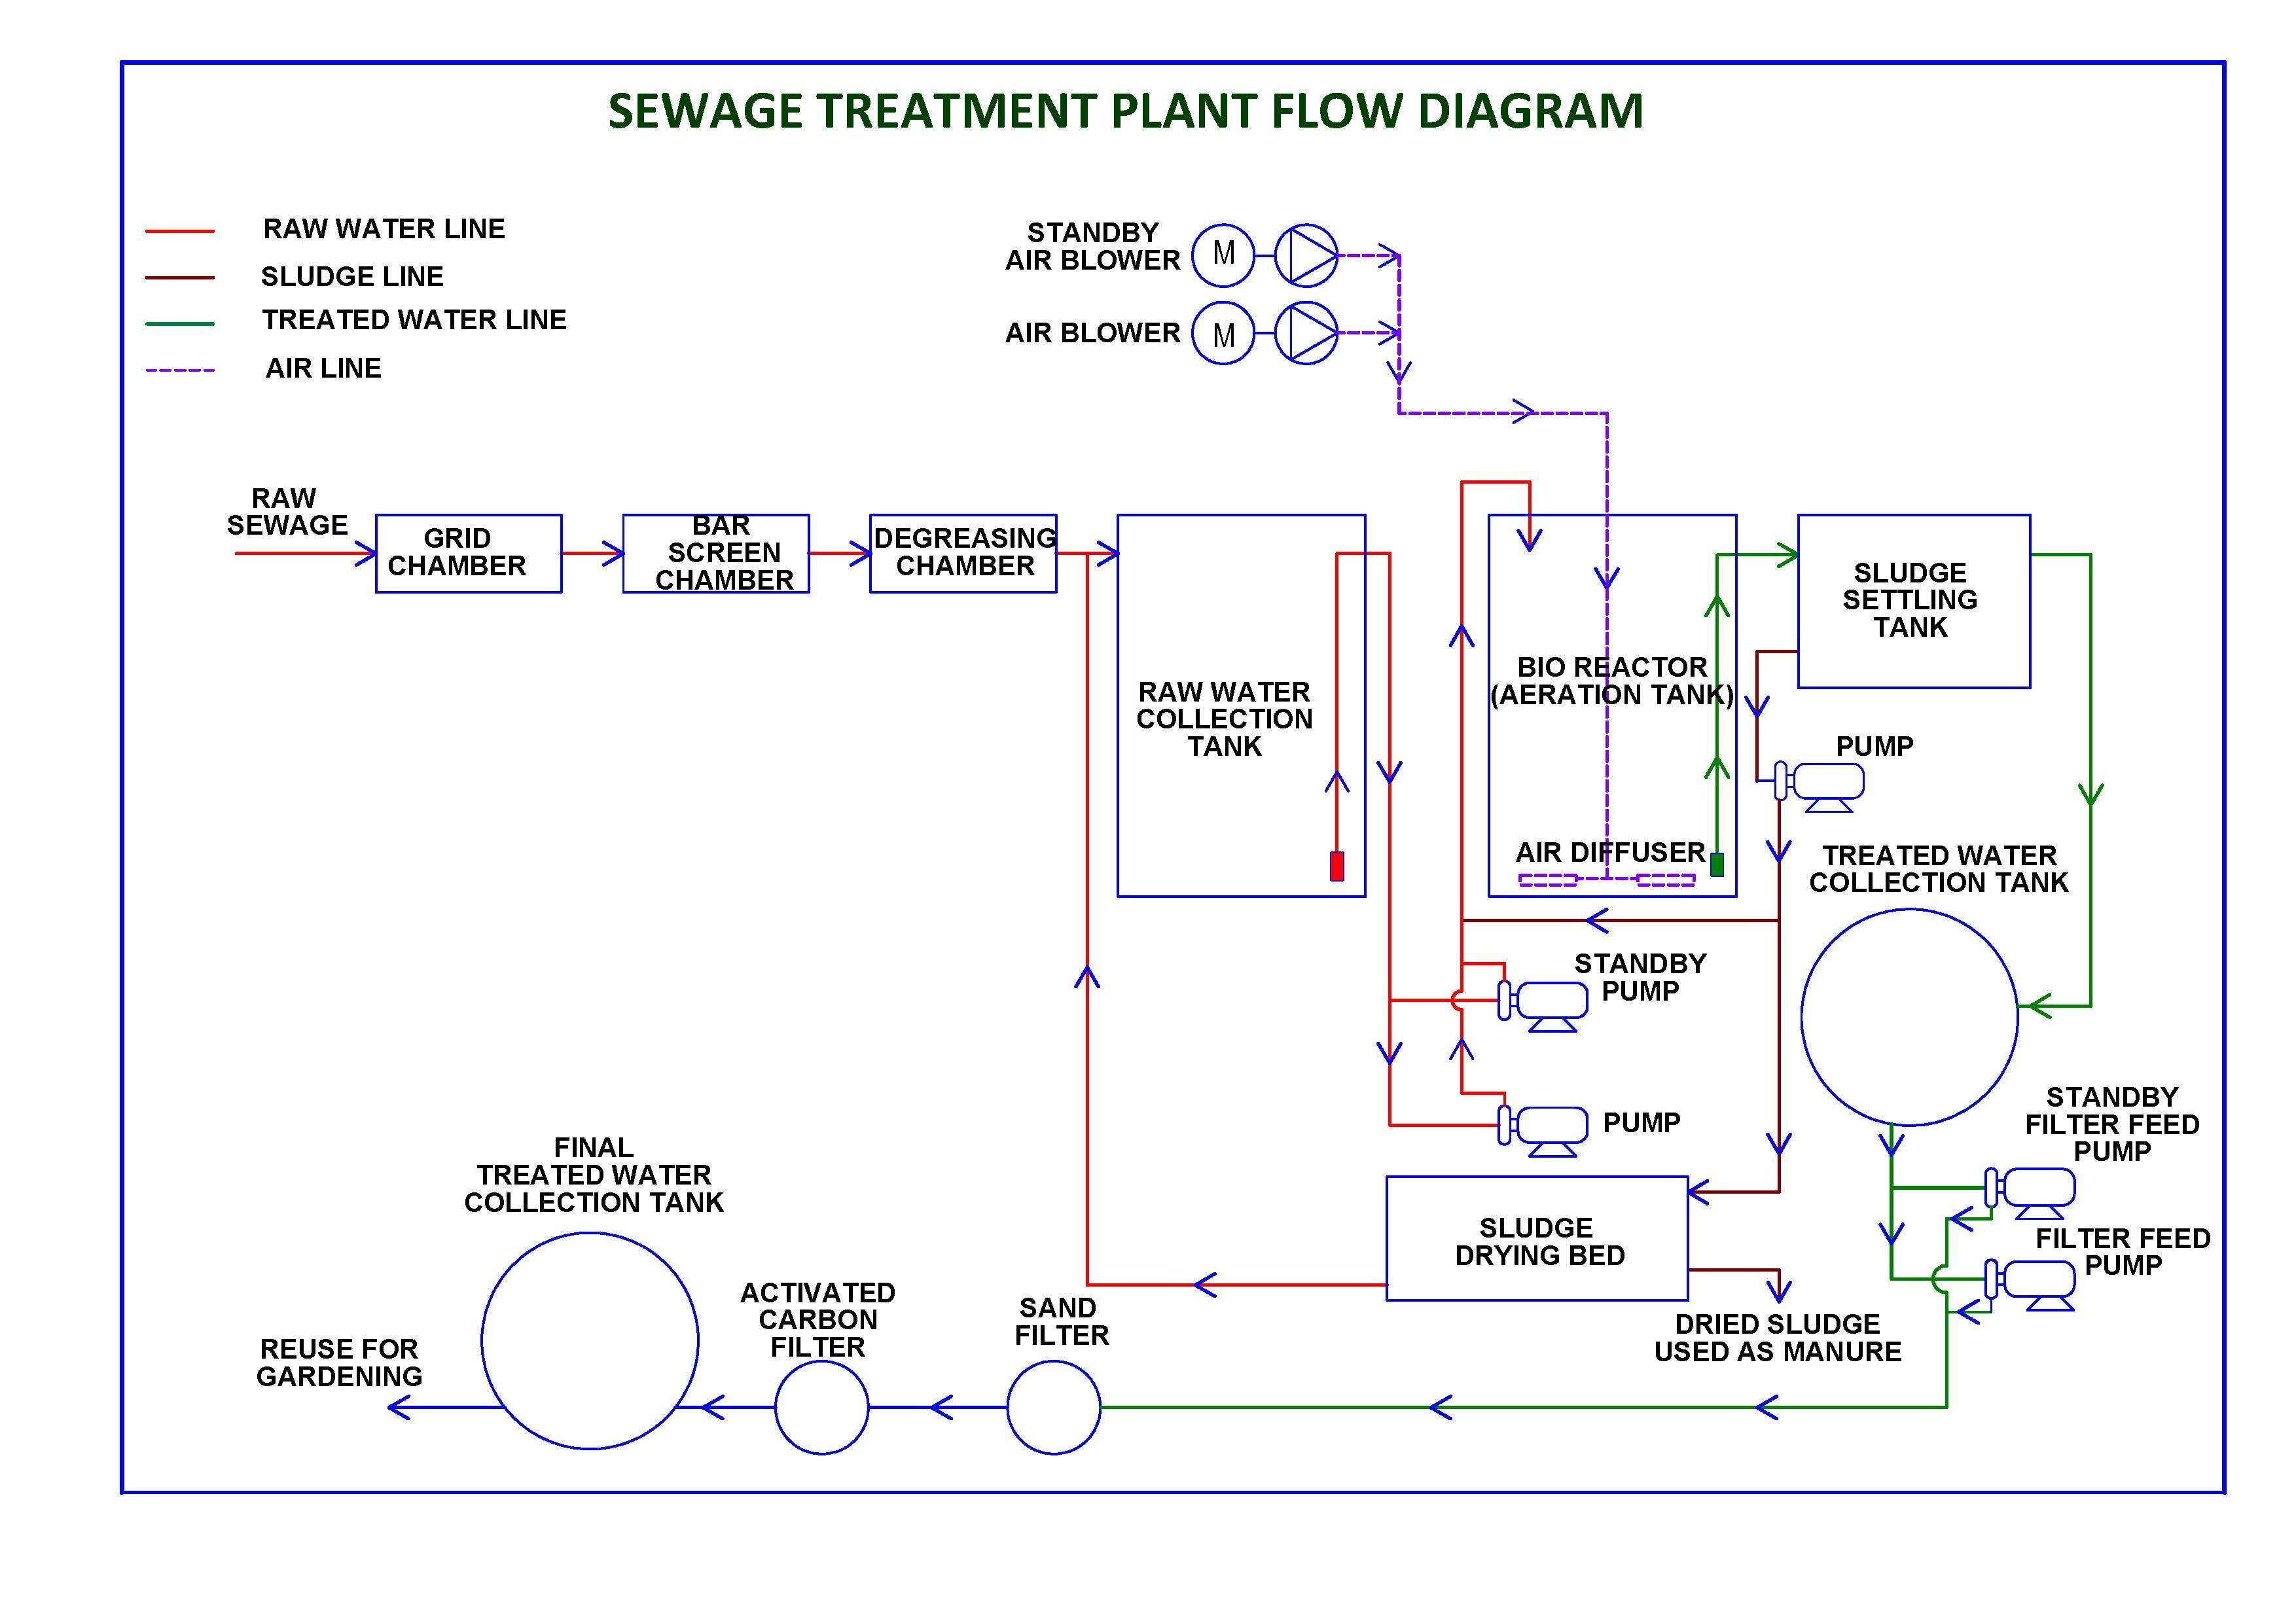 Pin By Nicoles Water Treatment On General Sewage Treatment Blockchain Sewage Treatment Plant